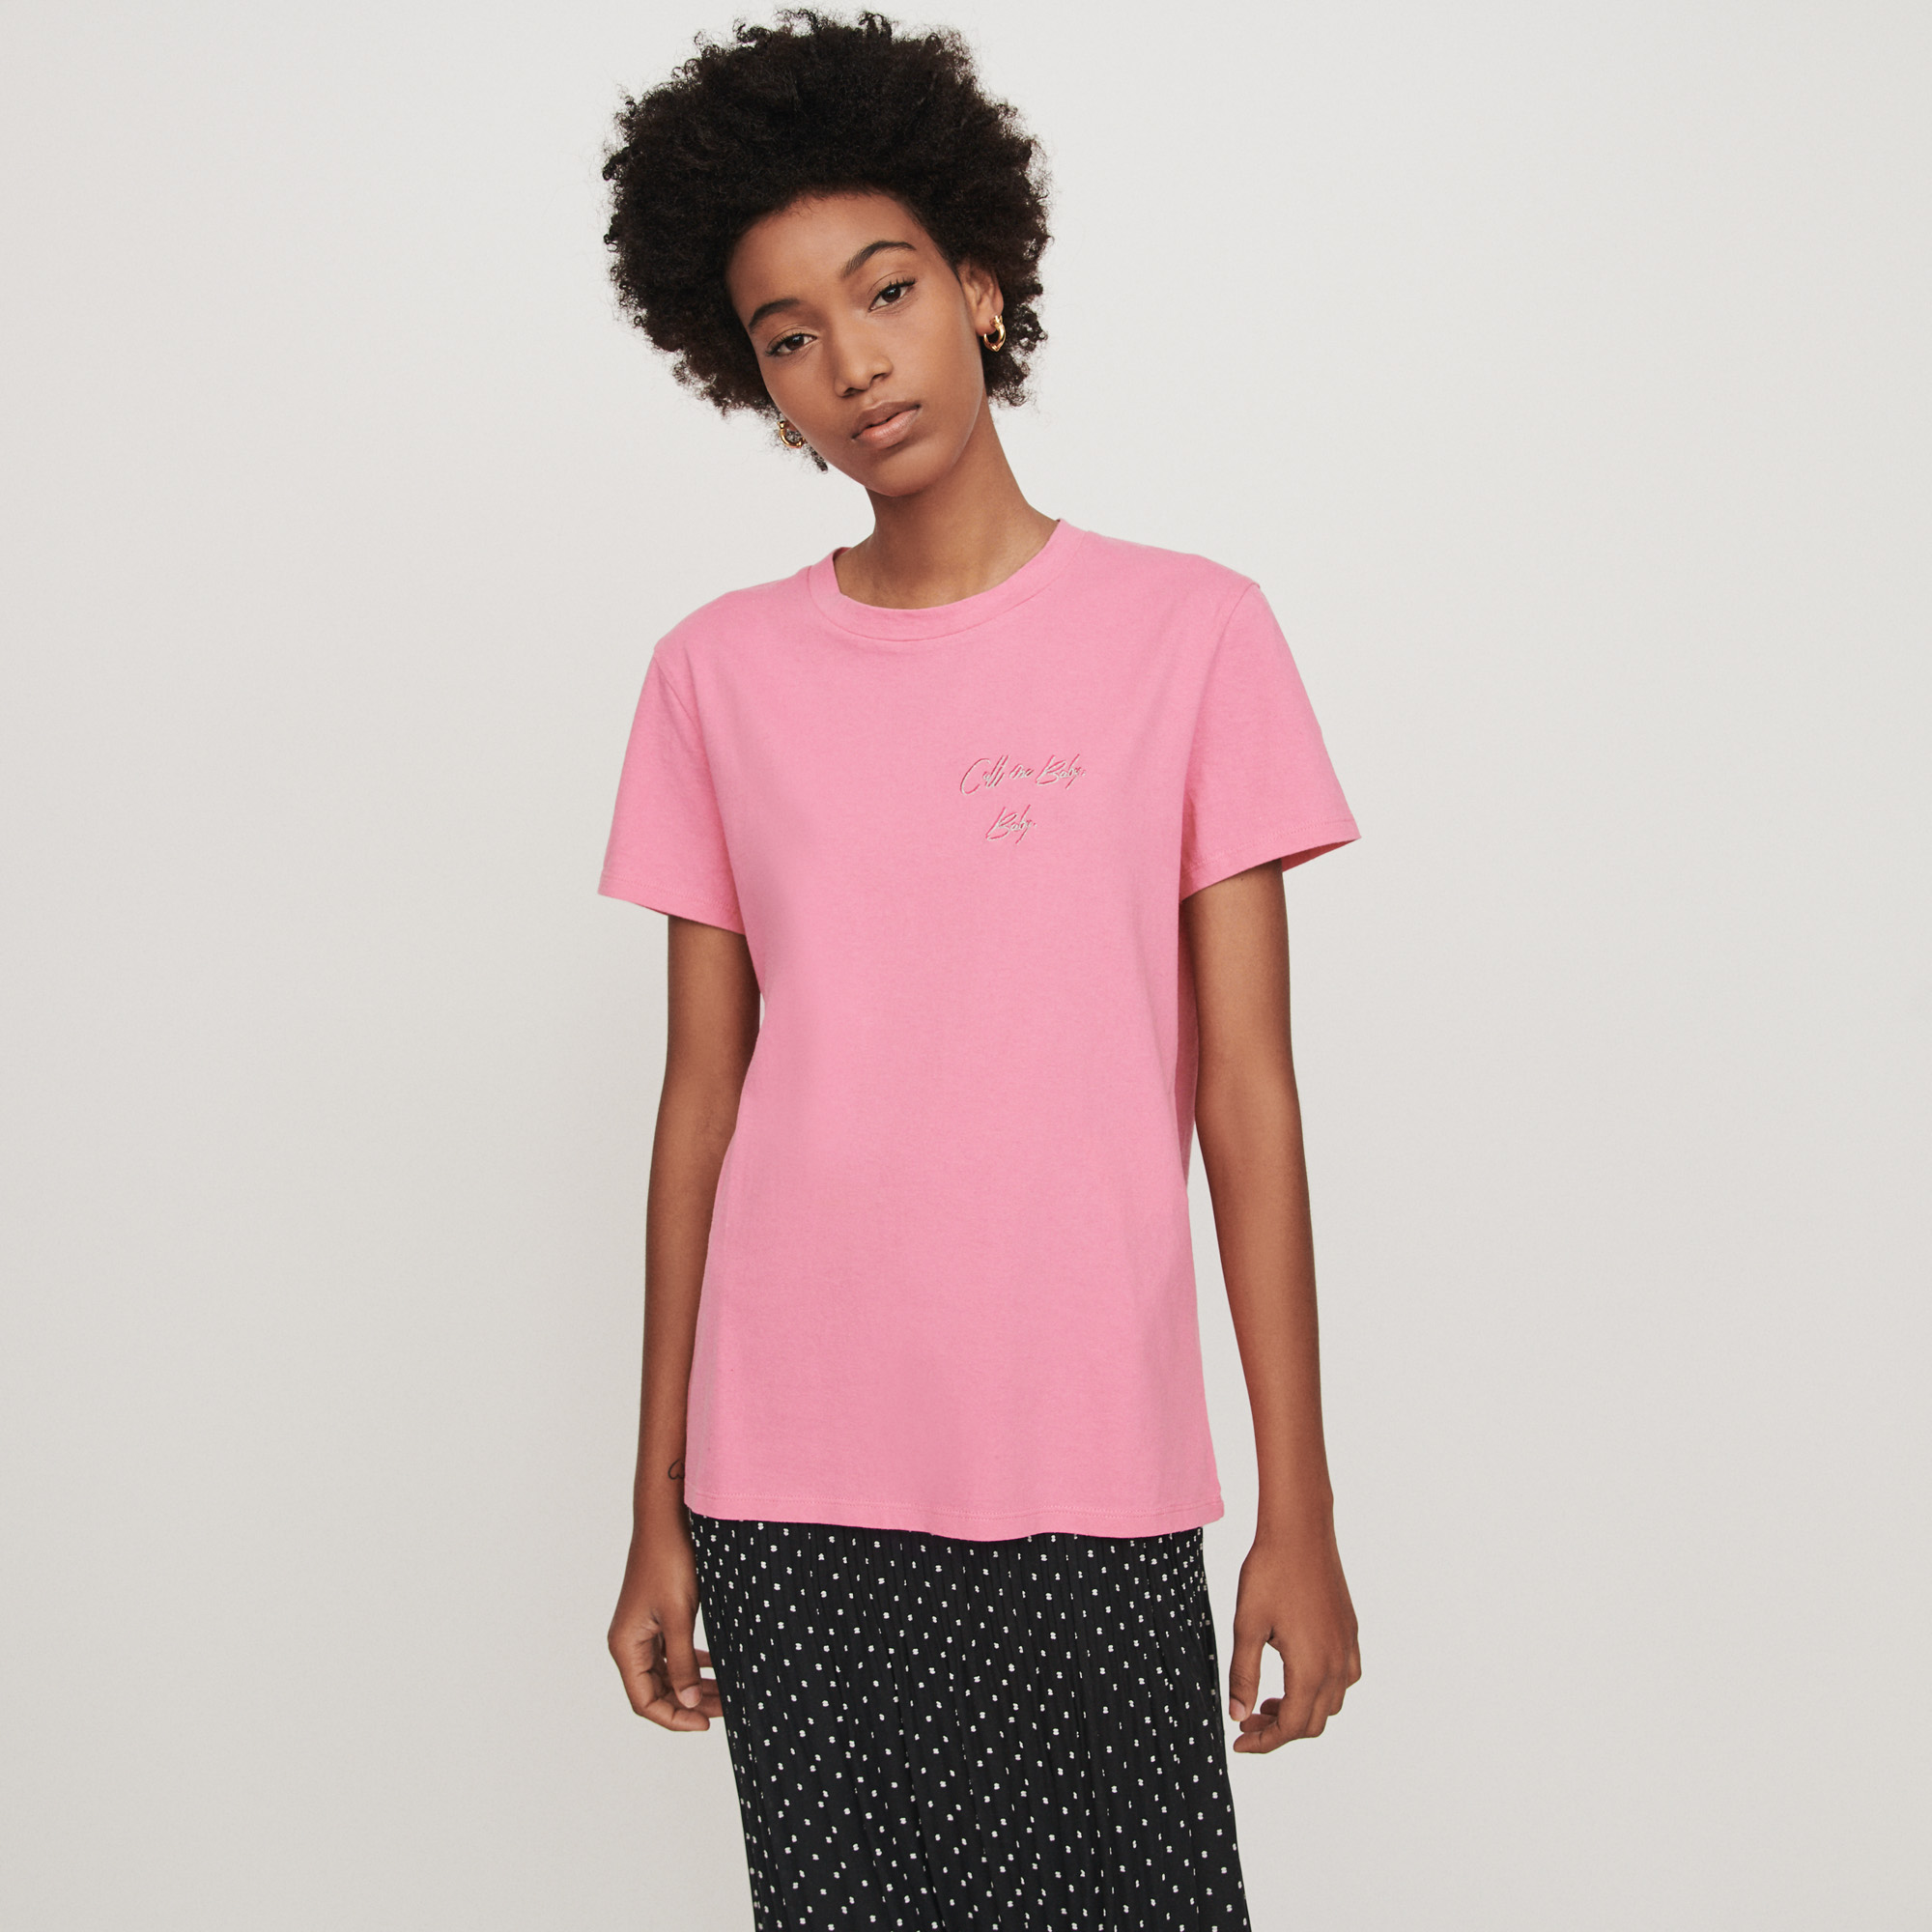 Embroidered short sleeved t shirt - Rose